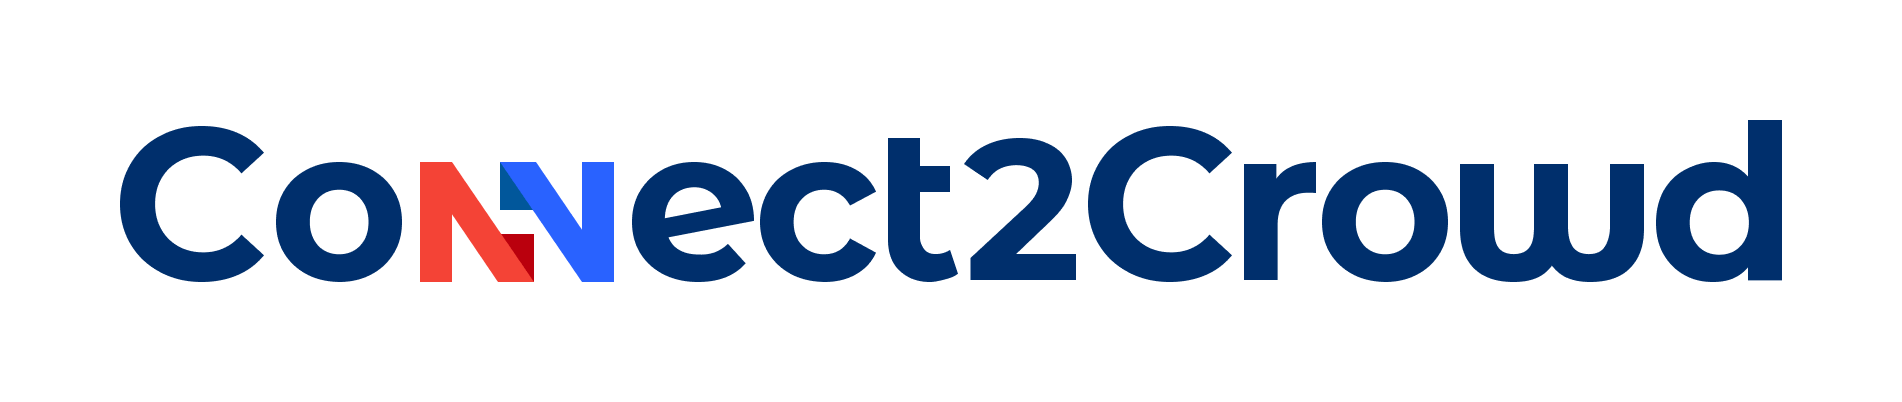 Connect2Crowd logo